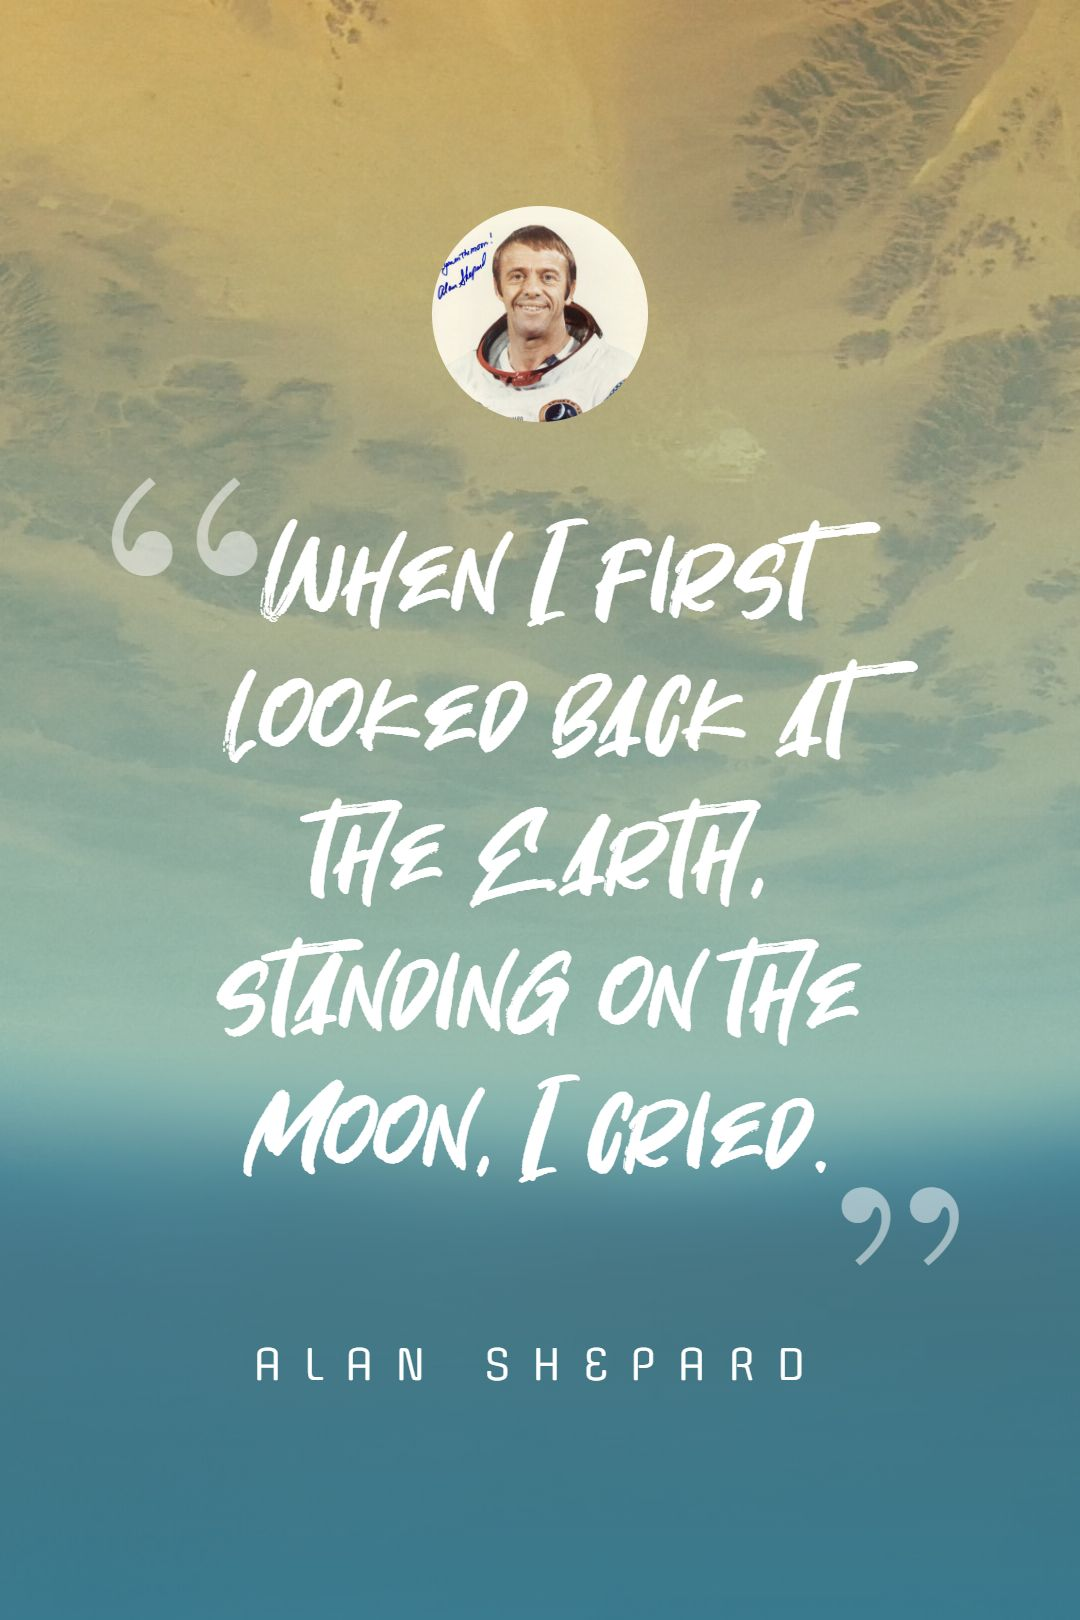 Quotes image of When I first looked back at the Earth, standing on the Moon, I cried.